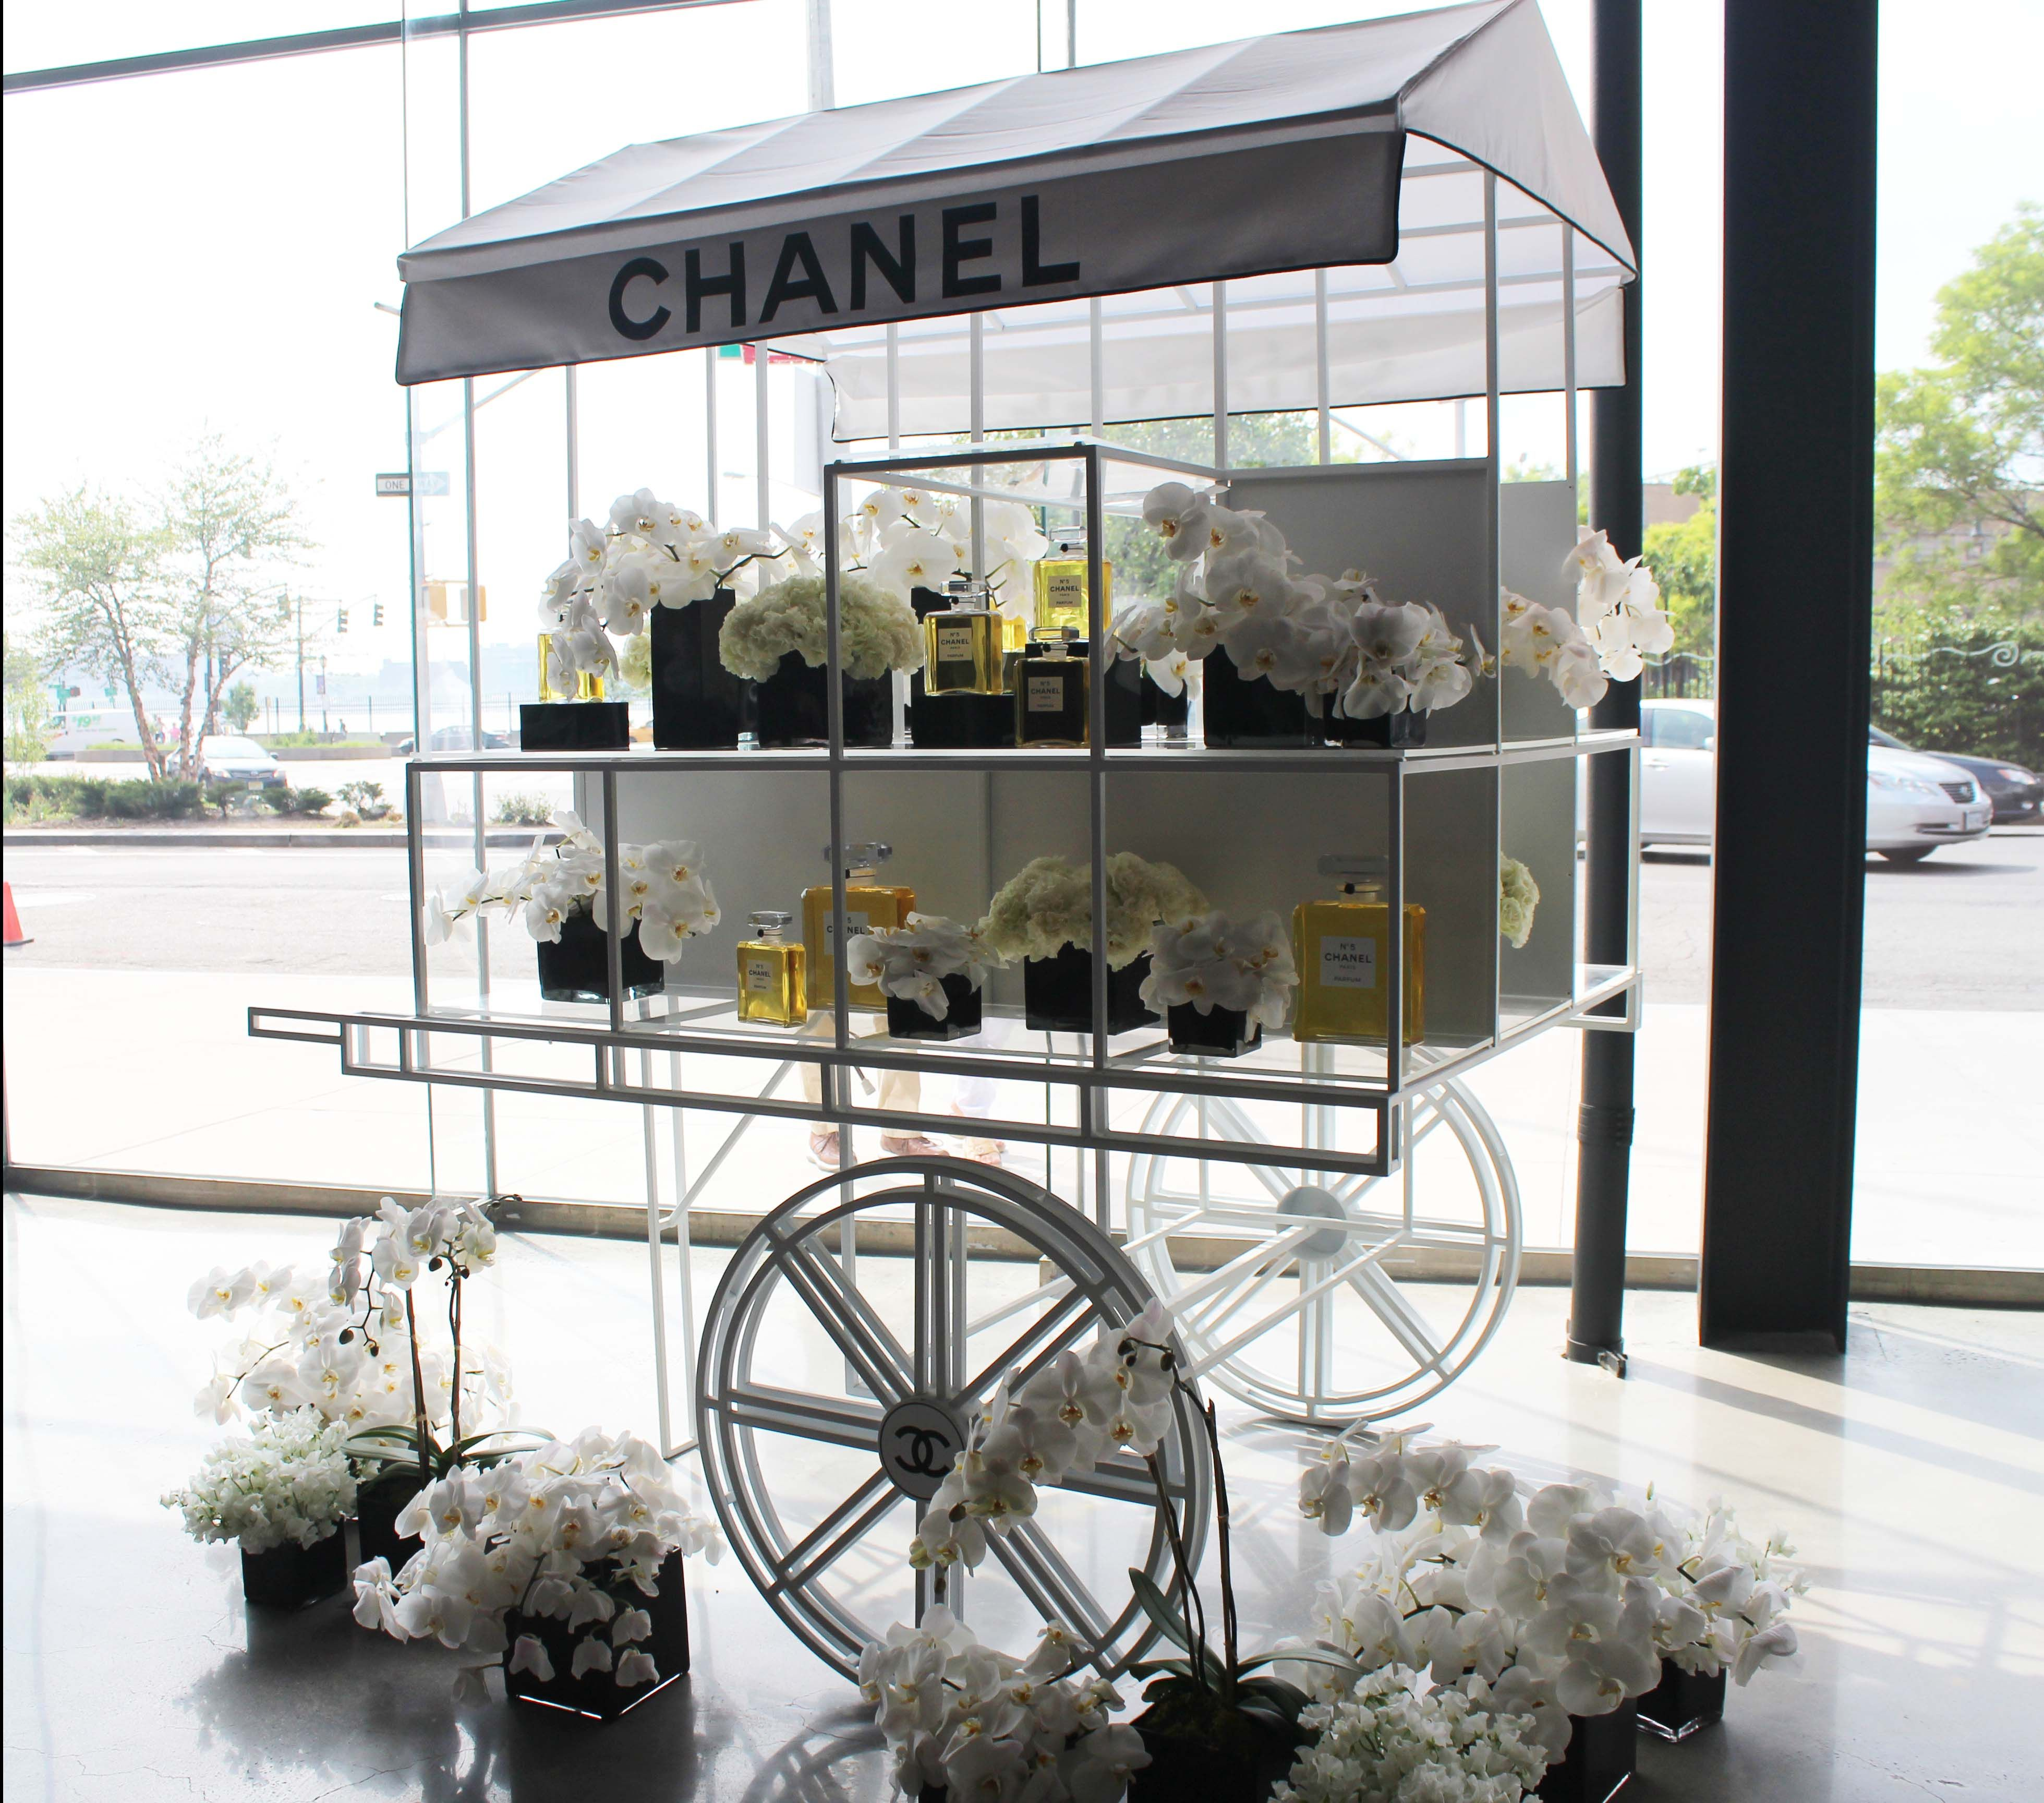 Chanel Flower Cart! At The Chanel Exhibit In Meatpacking